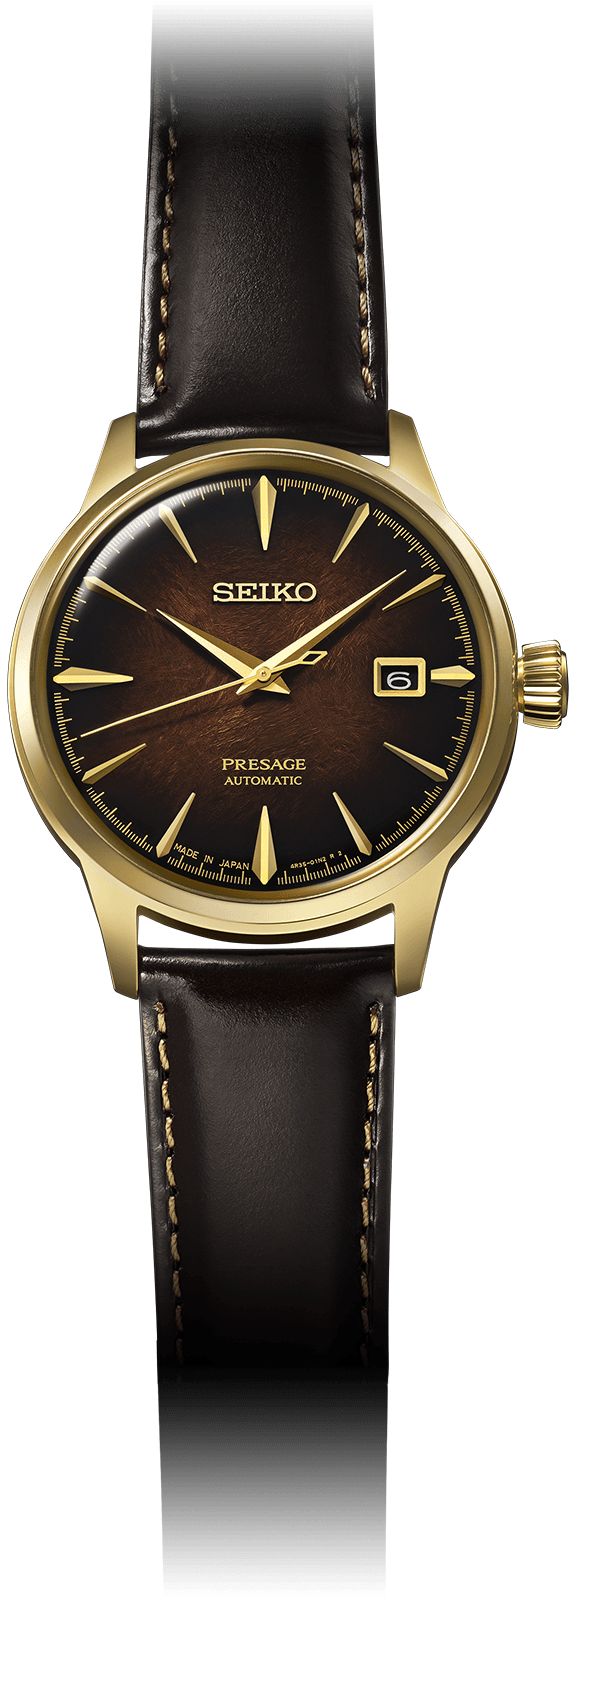 Seiko Presage - 40MM Cocktail Time Old Fashioned Limited Edition